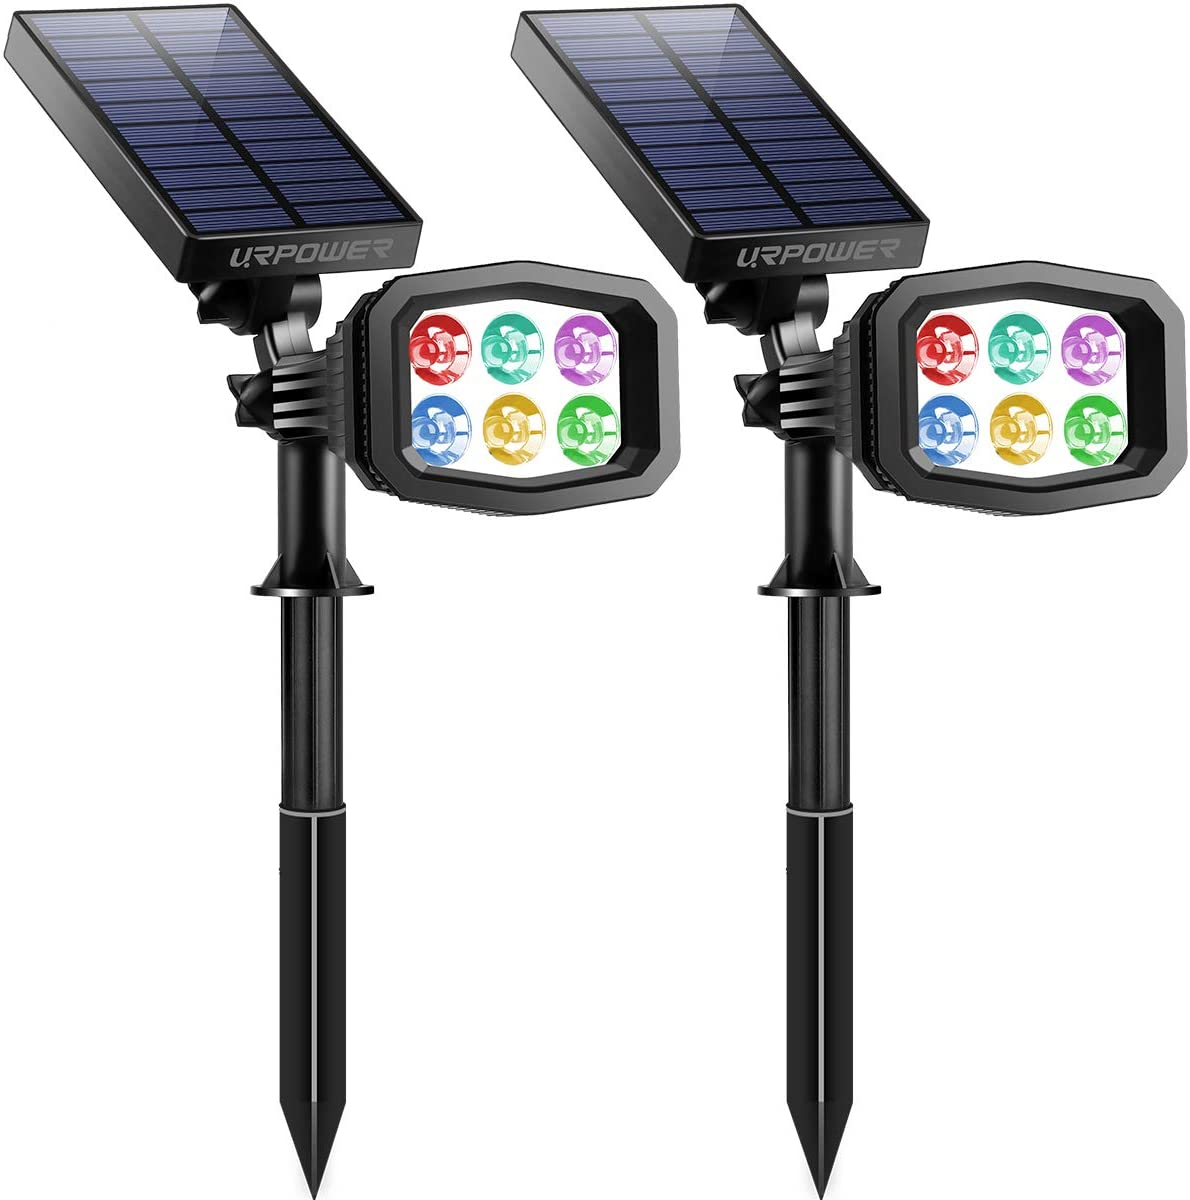 URPOWER Solar Lights Outdoor, Upgraded 2 Modes Solar Lights 2-in-1 Waterproof Solar Spotlight,Solar Wall Lights Pathway Lights Landscape Lighting (2 Pack) (Multi-Color)